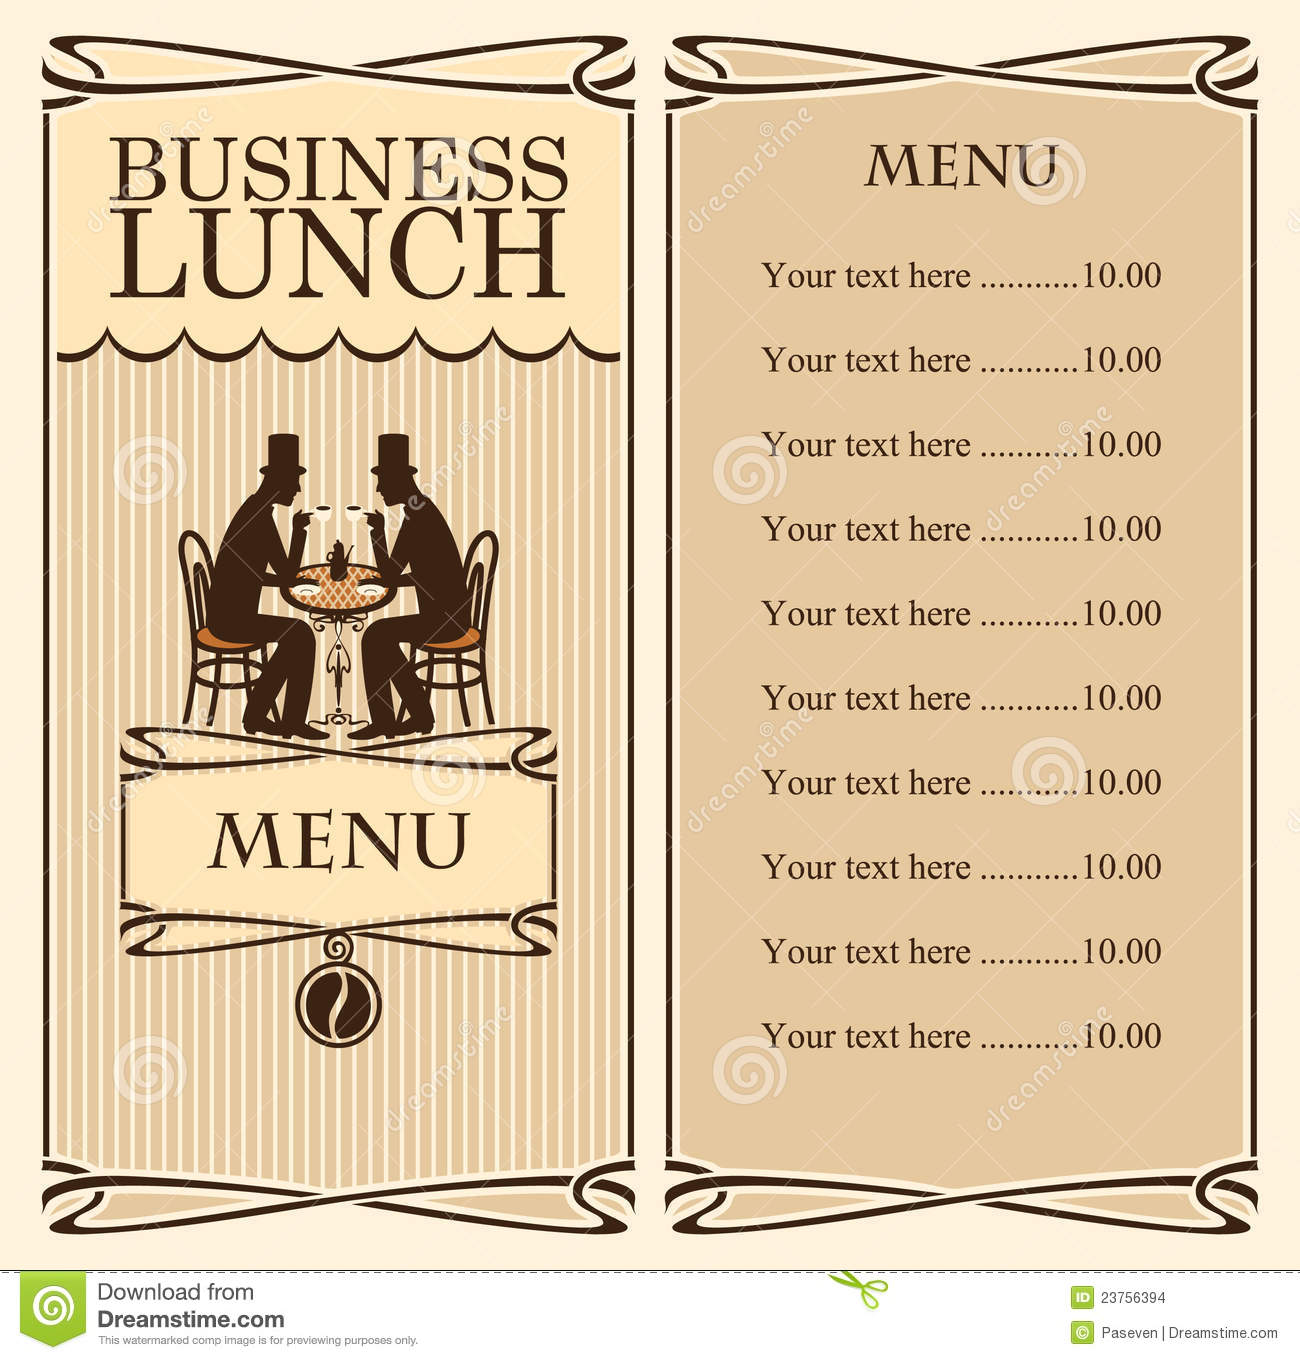 business lunch meeting clipart #17